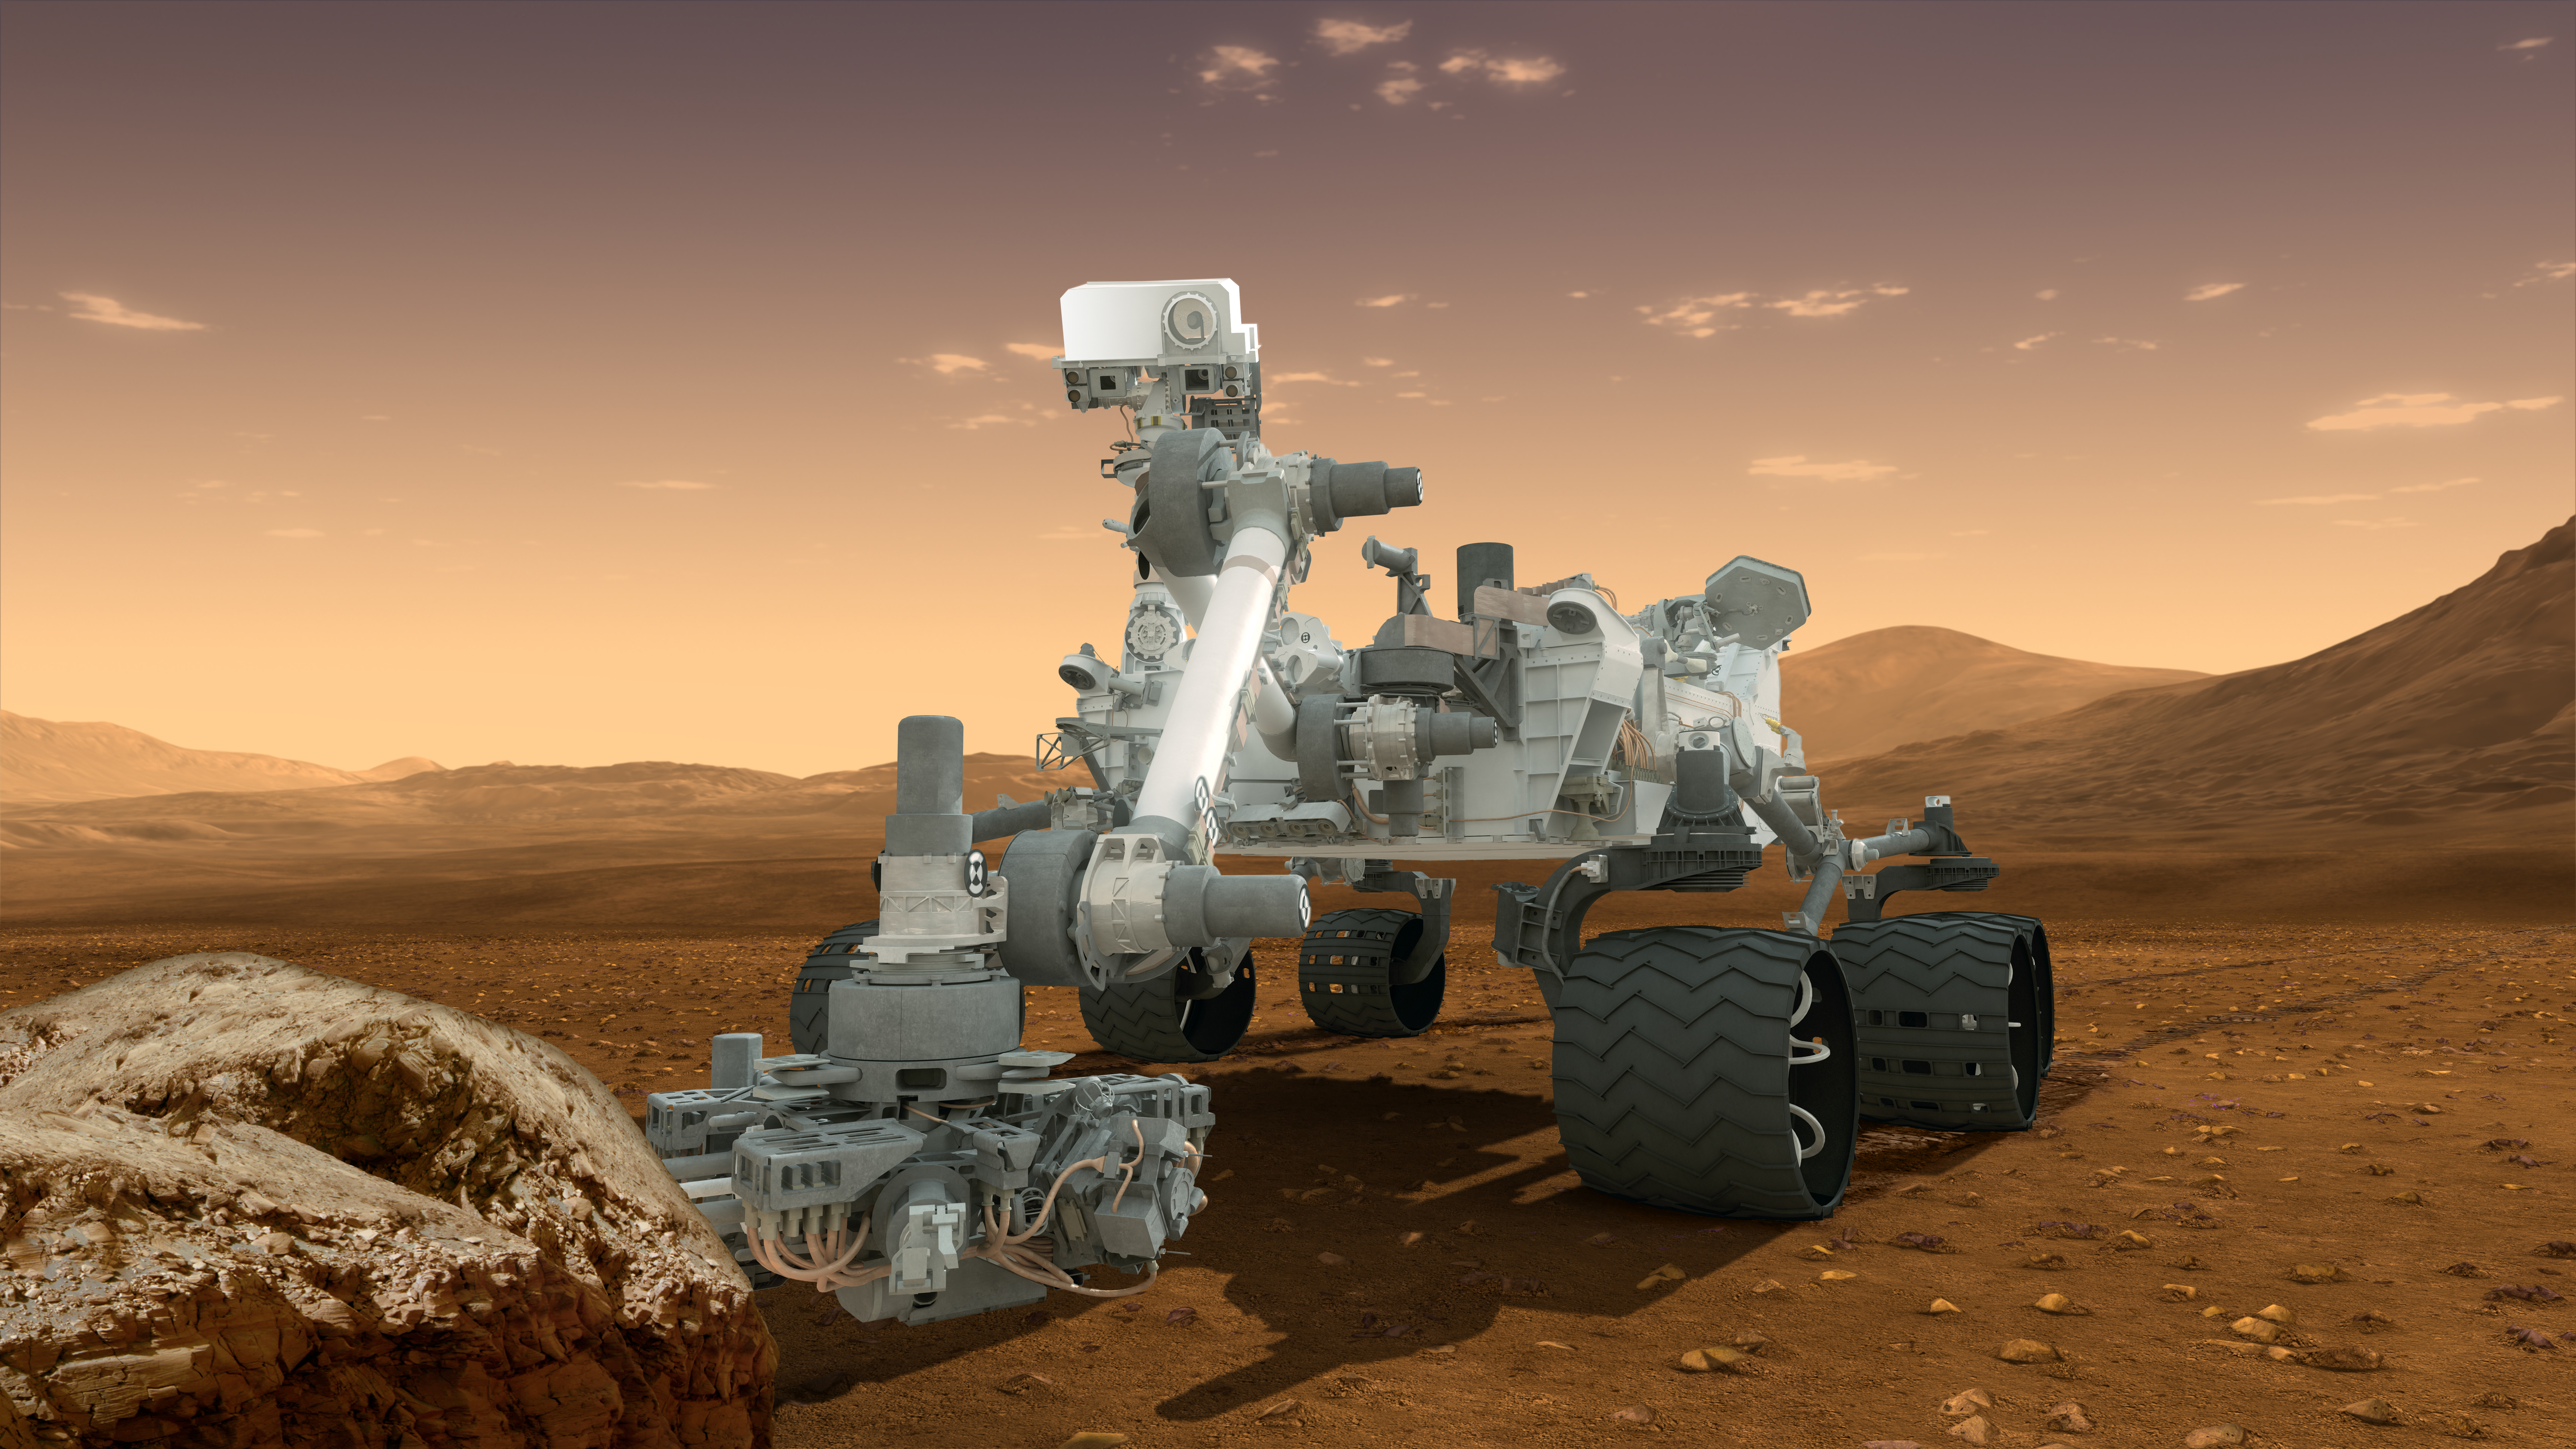 "This artist's concept features NASA's Mars Science Laboratory Curiosity rover, a mobile robot for investigating Mars' past or present ability to sustain microbial life. Curiosity landed near the Martian equator about 10:31 p.m., Aug. 5 PDT (1:31 a.m. Aug. 6 EDT) In this picture, the rover examines a rock on Mars with a set of tools at the end of the rover's arm, which extends about 7 feet (2 meters). Two instruments on the arm can study rocks up close. A drill can collect sample material from inside of rocks and a scoop can pick up samples of soil. The arm can sieve the samples and deliver fine powder to instruments inside the rover for thorough analysis. The mast, or rover's ""head,"" rises to about 6.9 feet (2.1 meters) above ground level, about as tall as a basketball player. This mast supports two remote-sensing science instruments: the Mast Camera, or ""eyes,"" for stereo color viewing of surrounding terrain and material collected by the arm; and, the Chemistry and Camera instrument, which uses a laser to vaporize a speck of material on rocks up to about 23 feet (7 meters) away and determines what elements the rocks are made of."